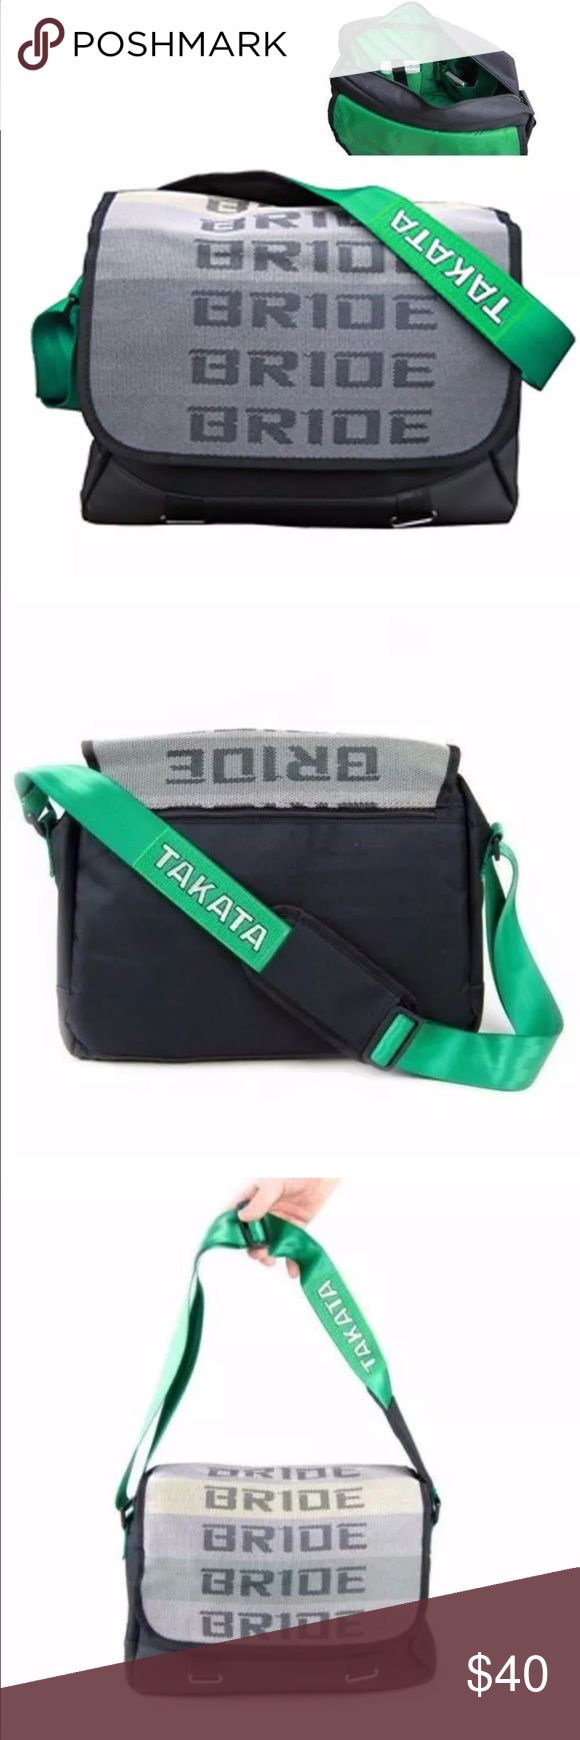 """JDM Racing Laptop Carry Bag JDM BRIDE Racing Carrying Laptop Messenger Bag - GREEN Adjustable Strap     Features: Racing Harness Single Shoulder Strap Internal Zipper Pockets Internal Pen and Pencil Holder Holds 11-14"""" laptop! (will not fit 15.6""""+ laptop) Heavy Duty Zippers 100% Top Notch Quality! Back Zipper Pocket Green Color Strap with White Takata Logo  Packing Include:  x1 Takata Shoulder Bag Bags Laptop Bags"""